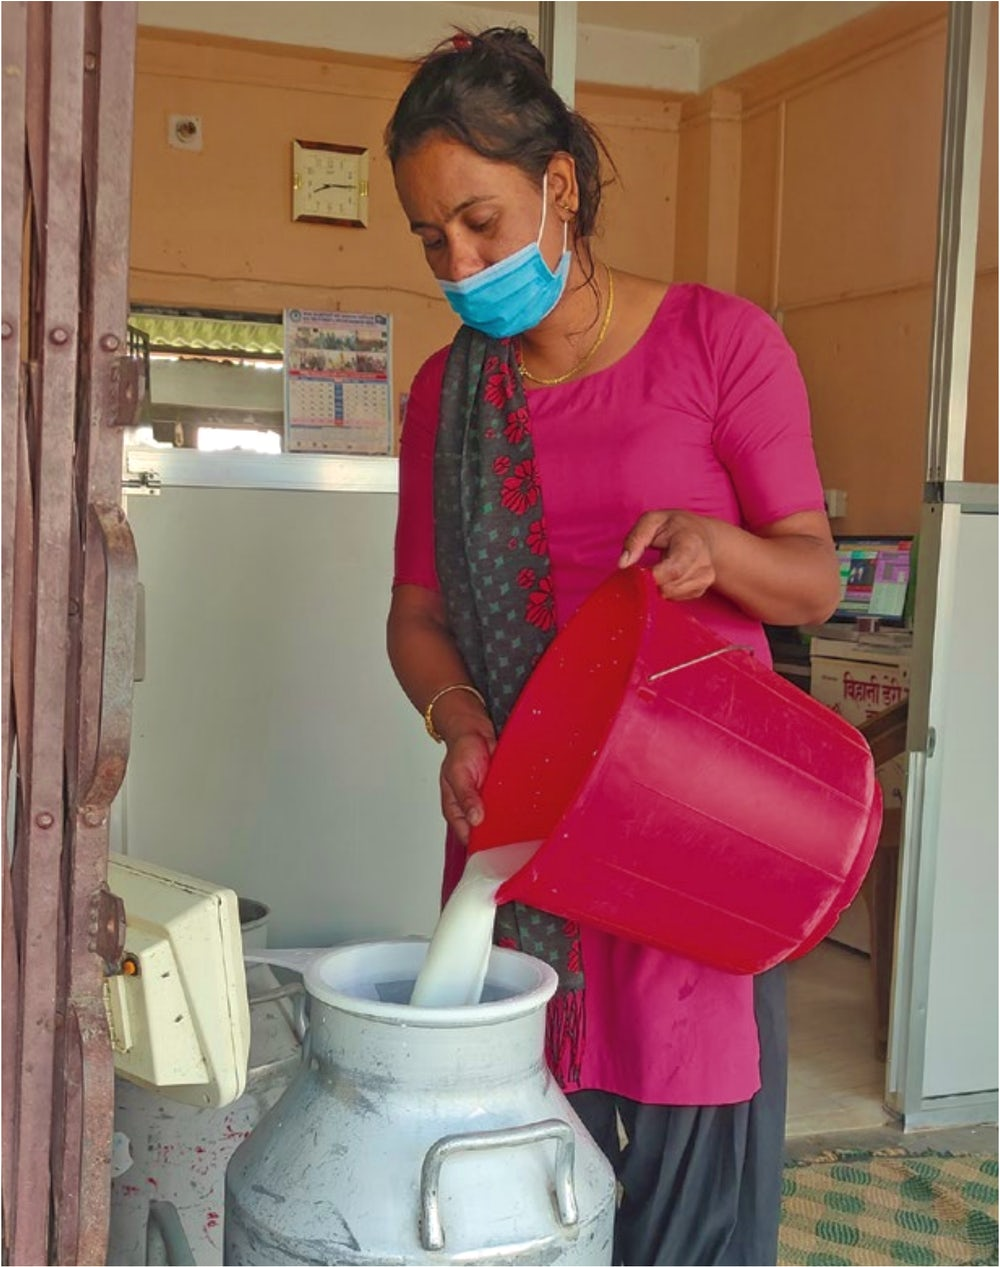 Since the beginning of the COVID-19 pandemic, the women of Bihani Dairy have been taking the necessarily precautions to keep their business running safely.